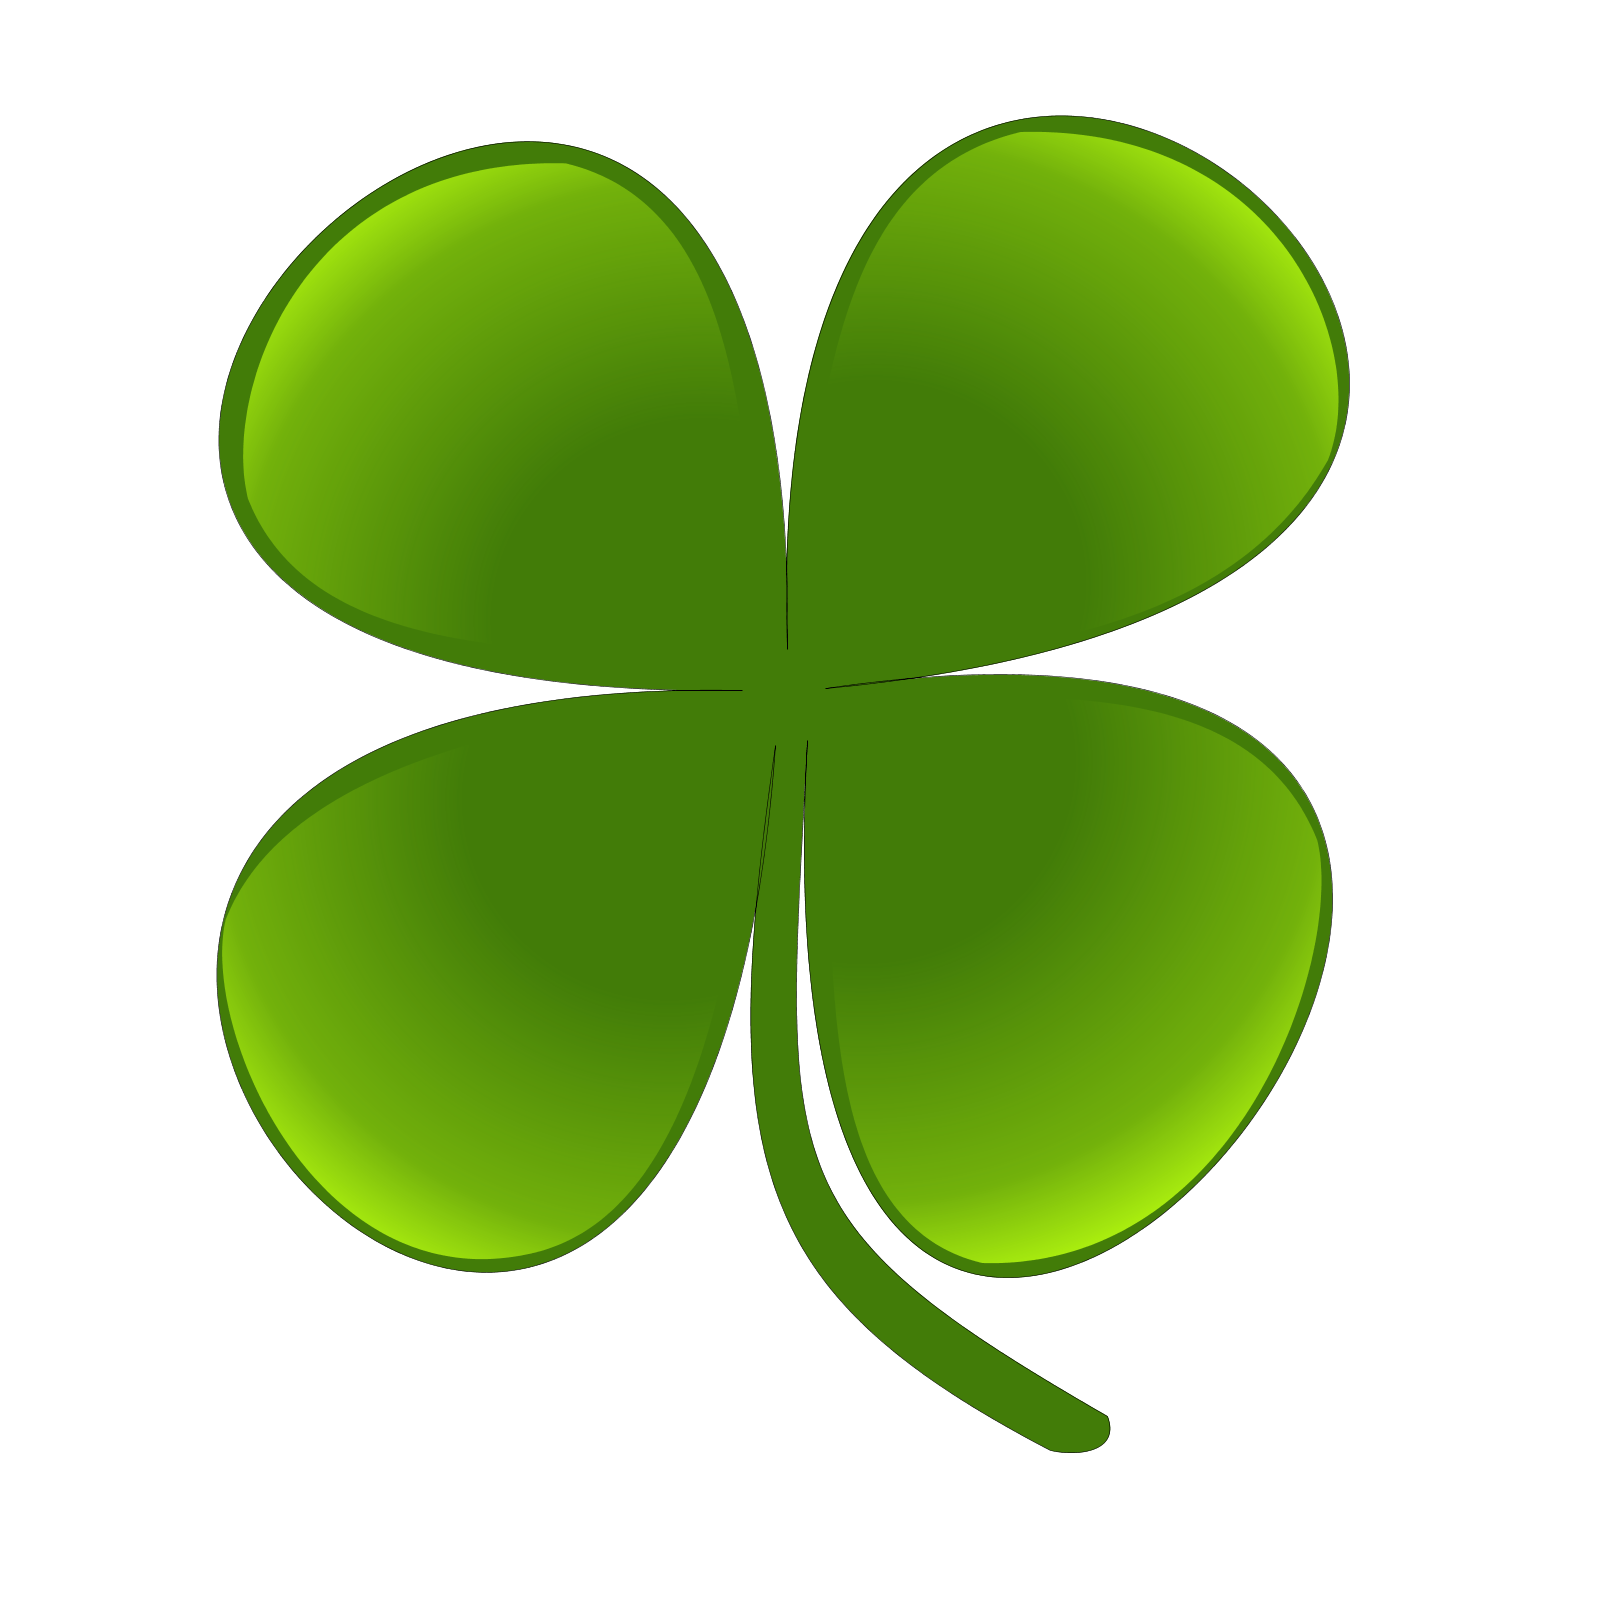 Clover clipart traceable. Shamrock dr odd